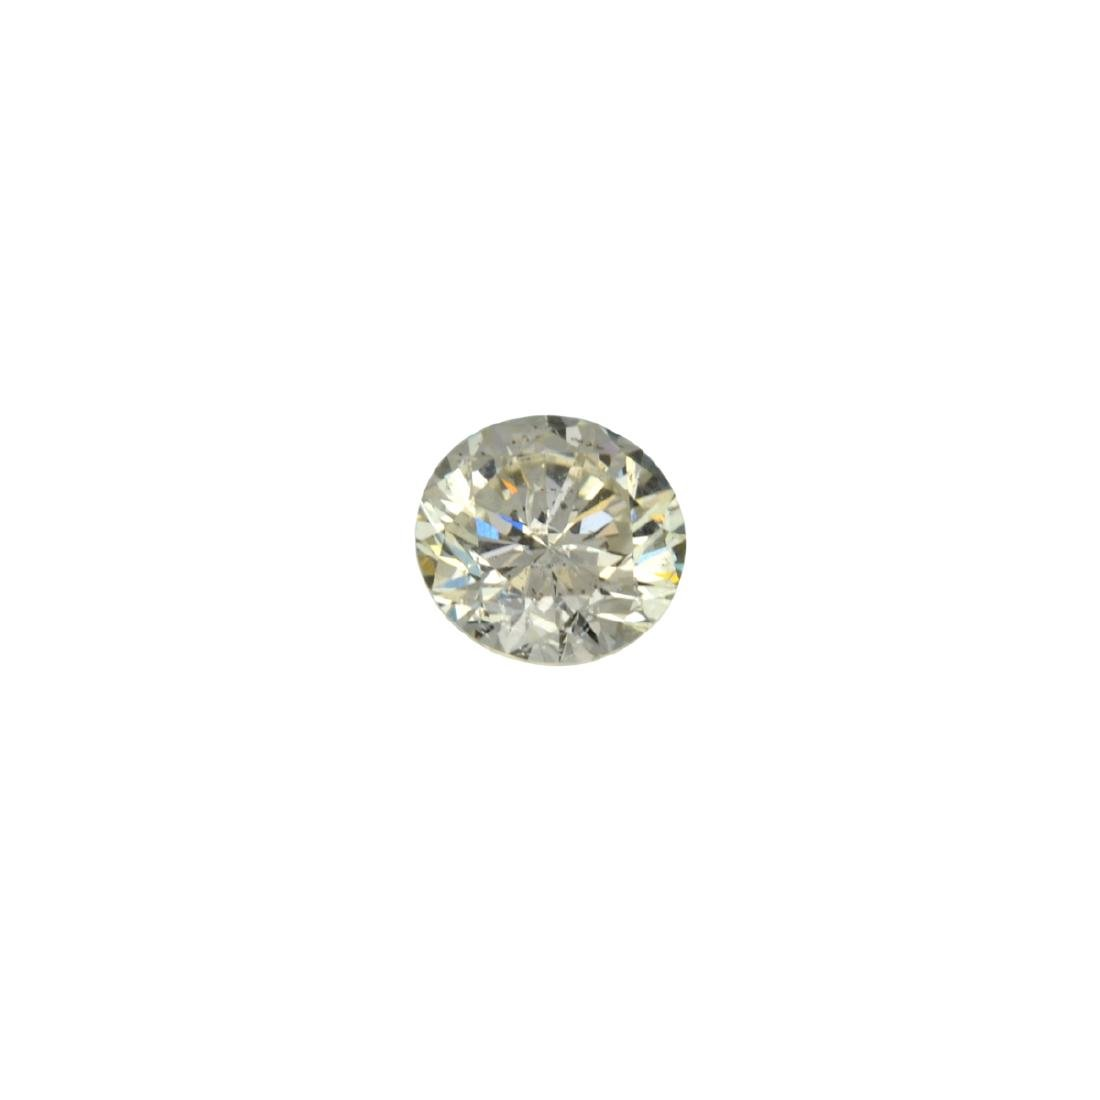 Fine Jewelry GIA Certified 0.61CT Brilliant Round Cut